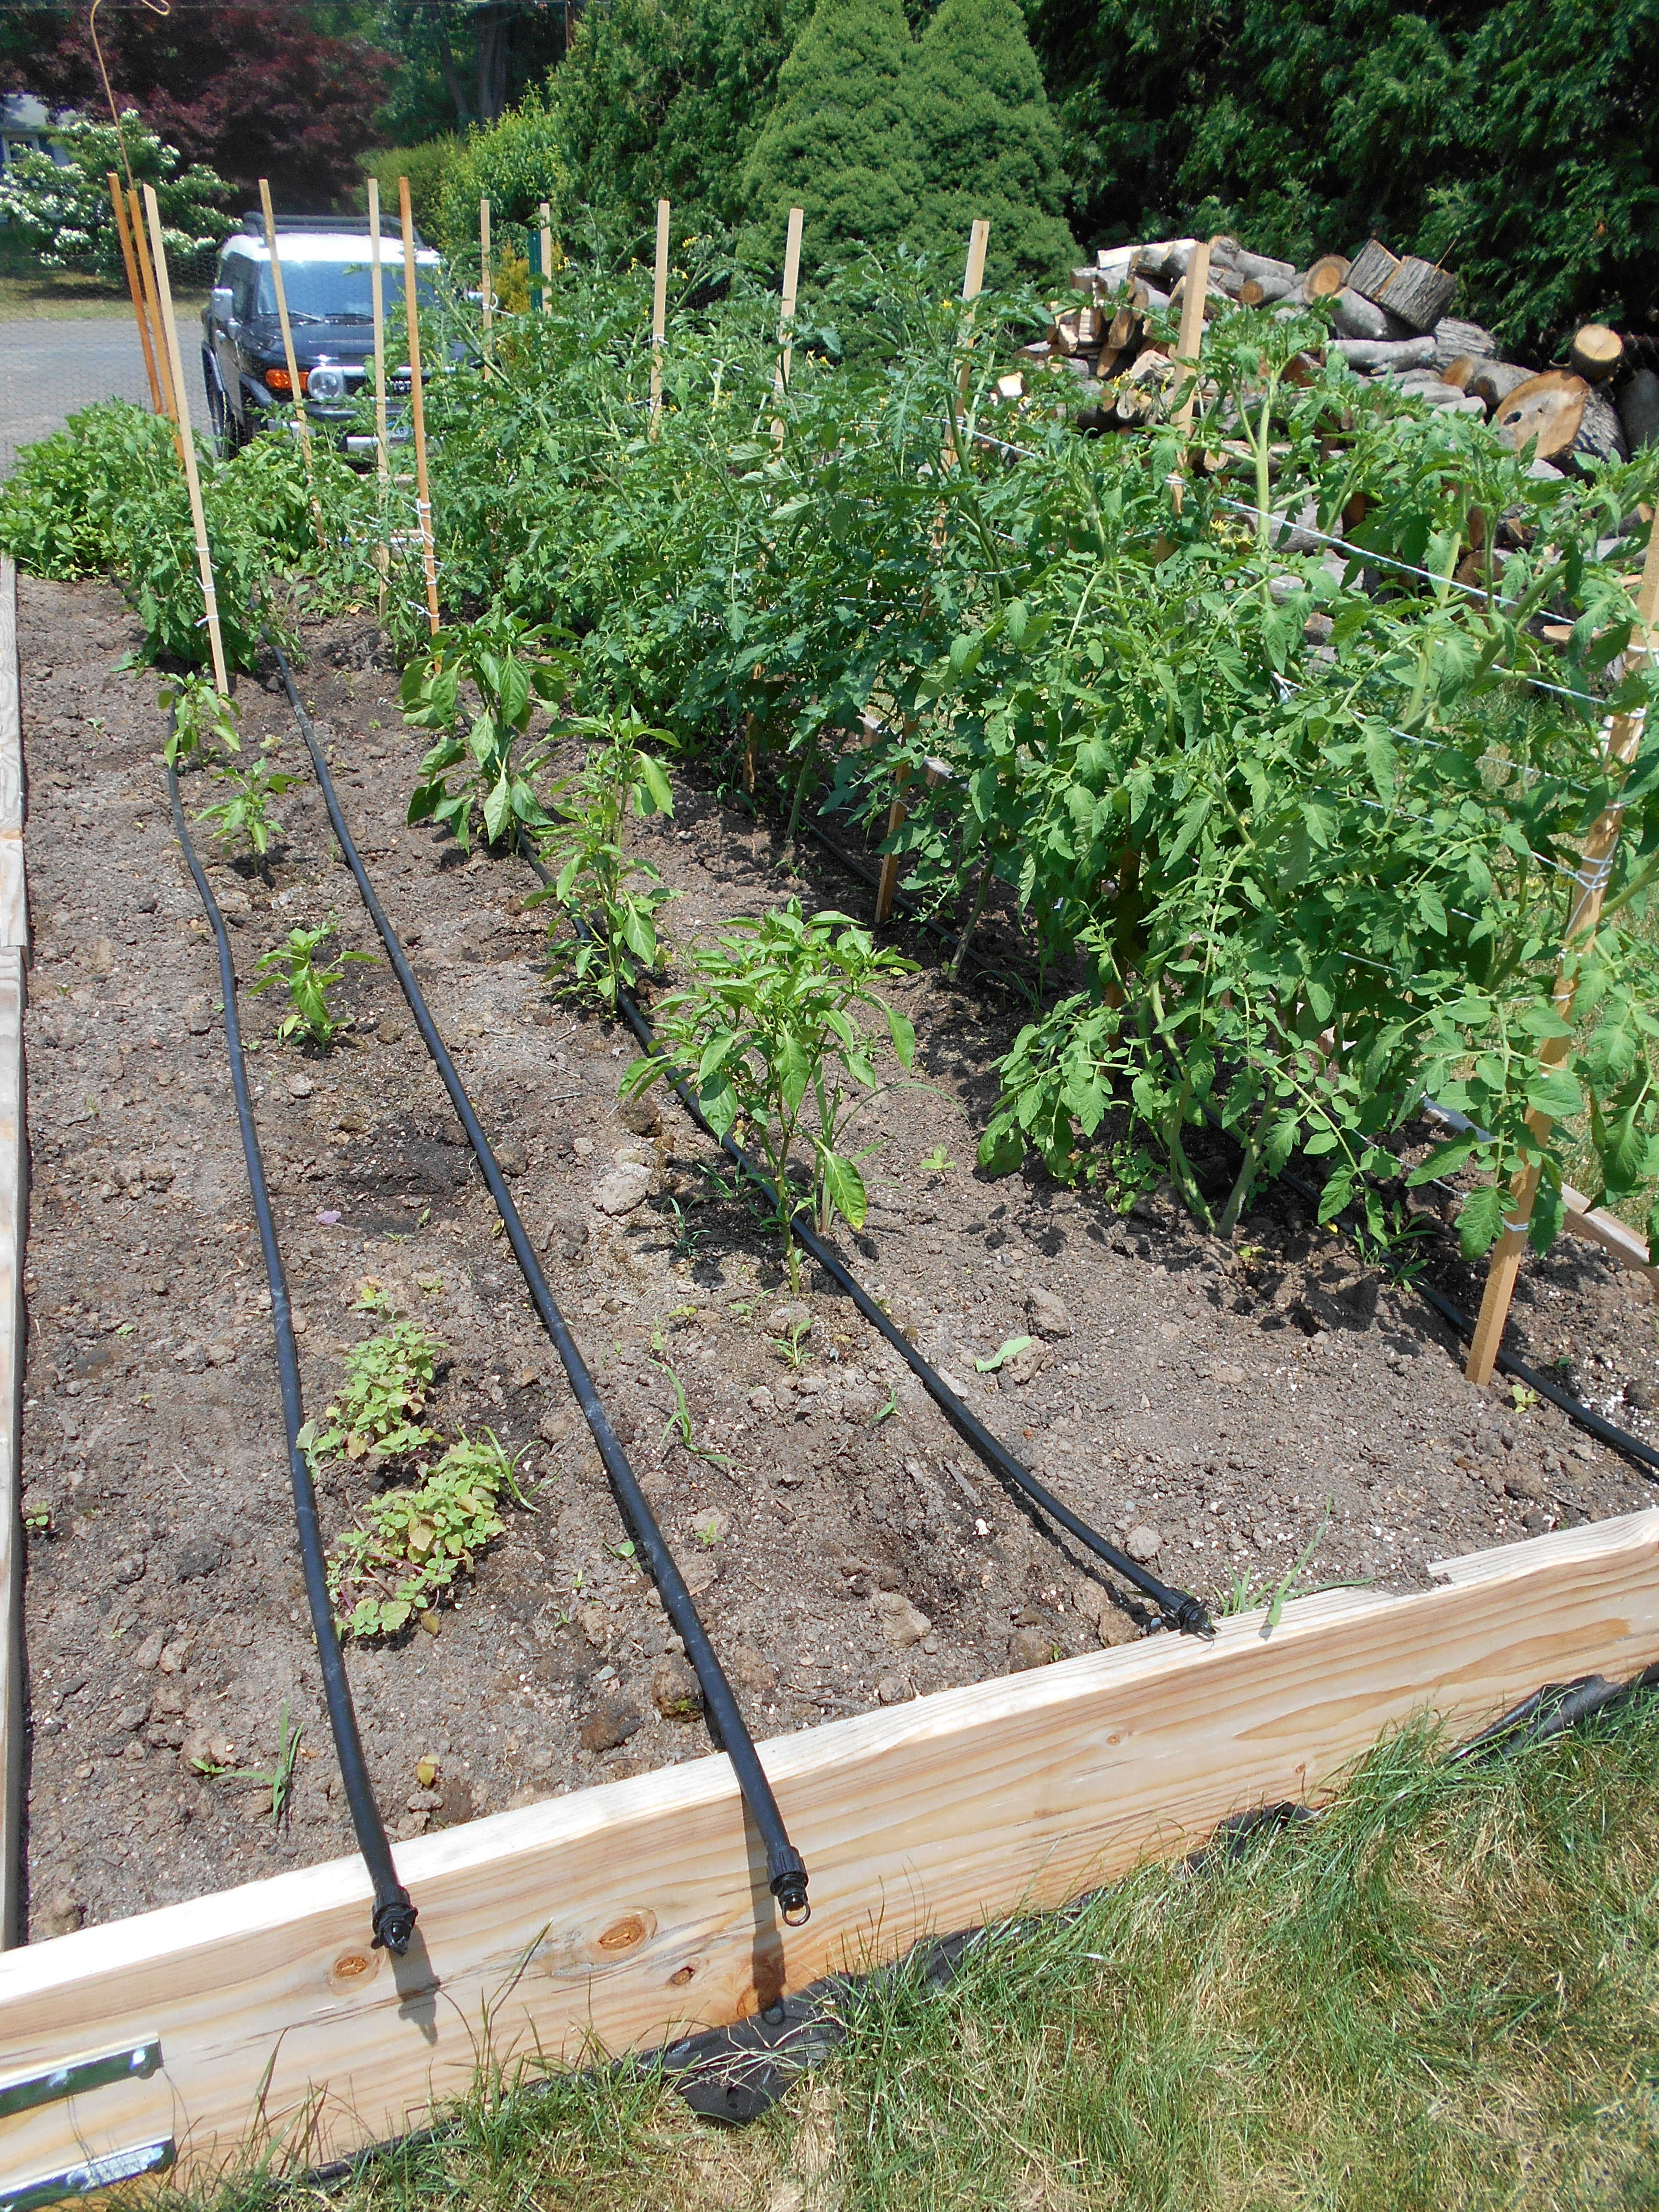 Do it yourself drip irrigation systems growers supply - Diy drip irrigation systems ...